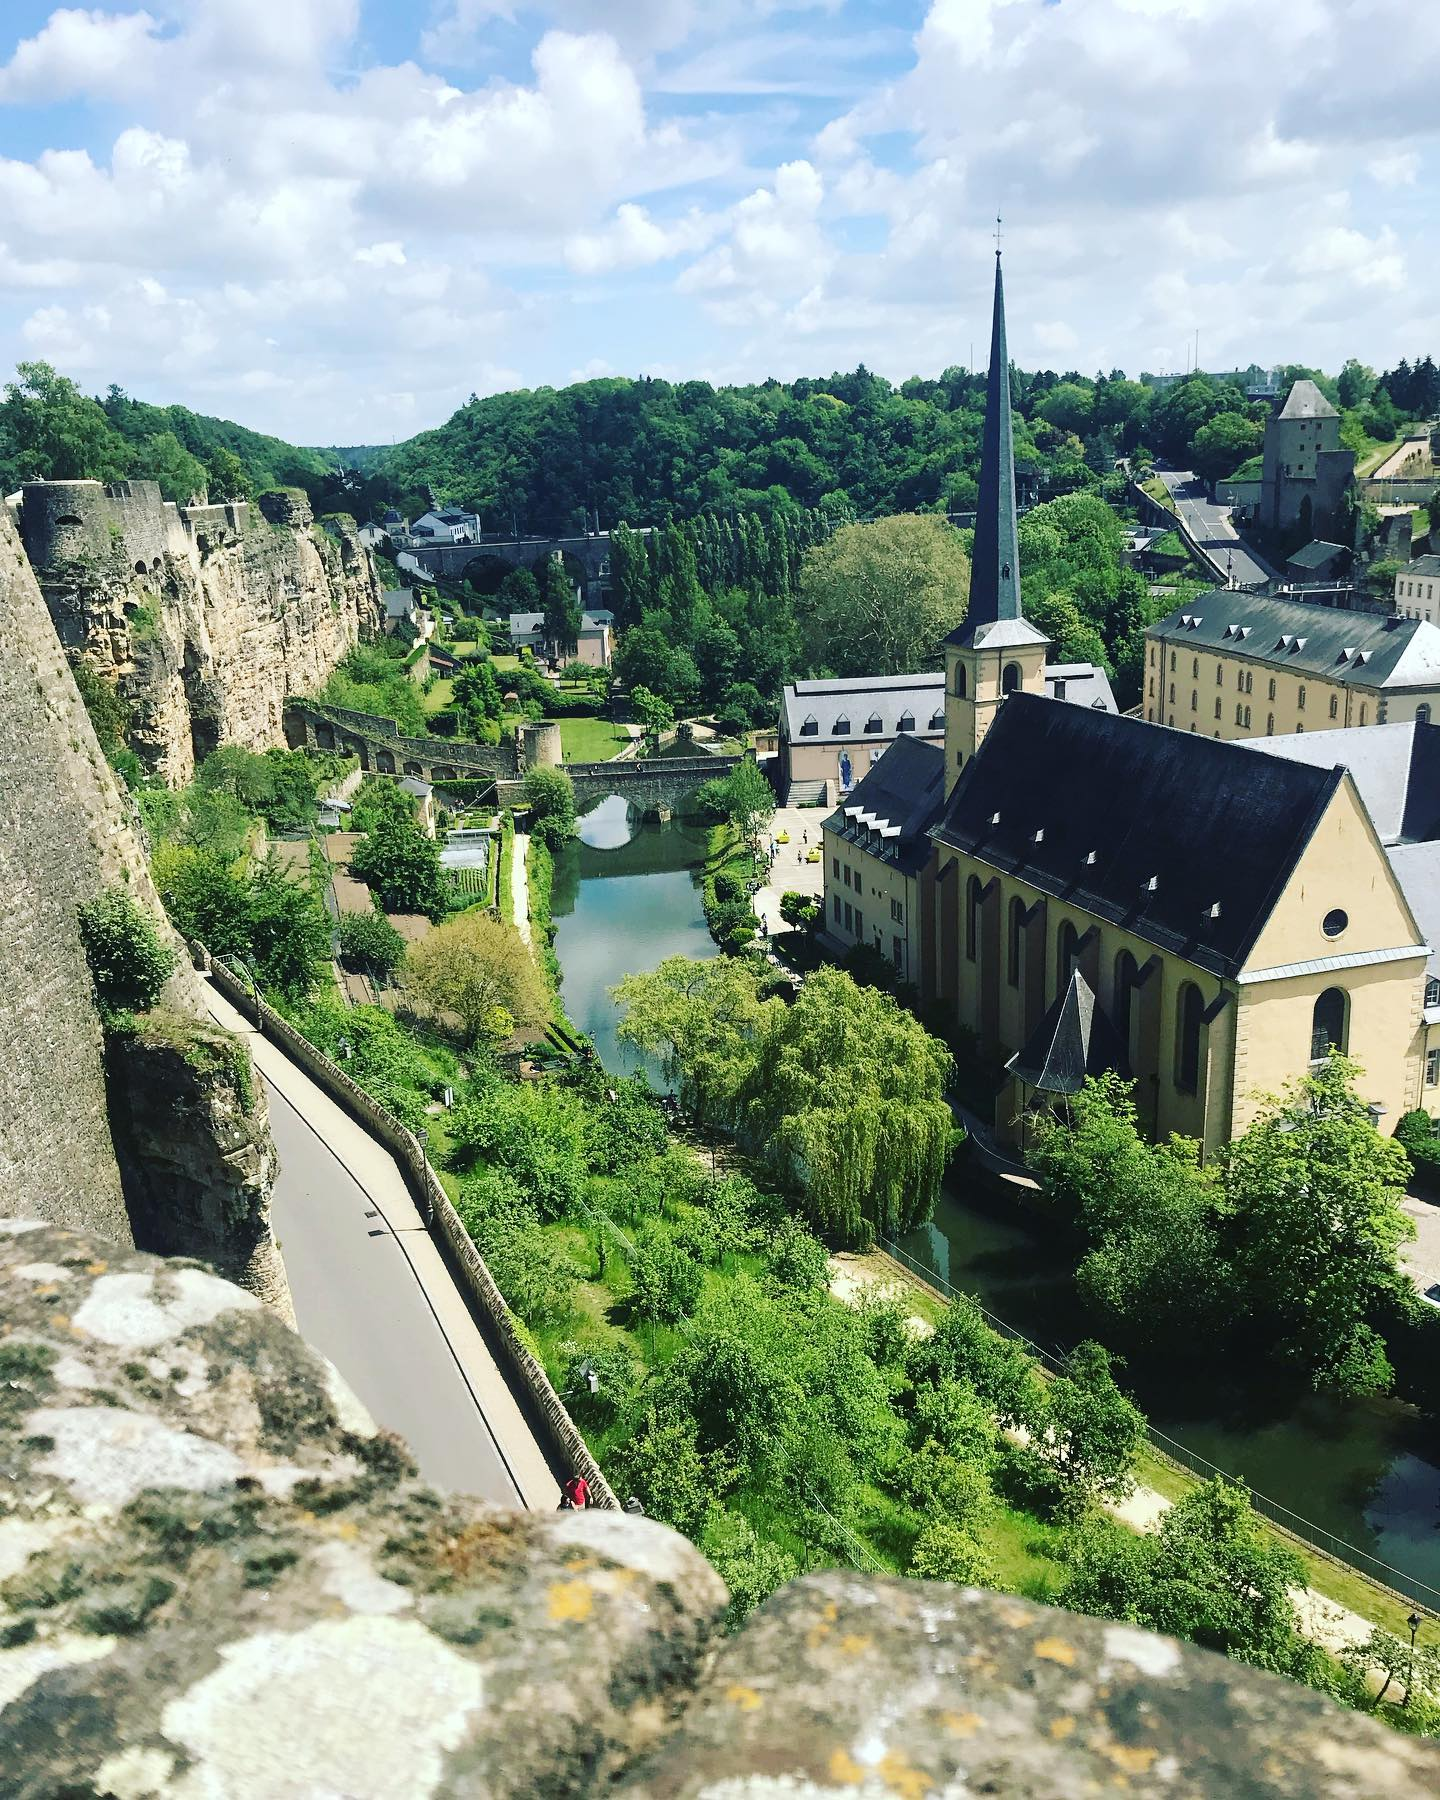 Luxembourg wins for most dramatic landscape. It really takes your breath away. ❤️ #Luxembourg 🇱🇺